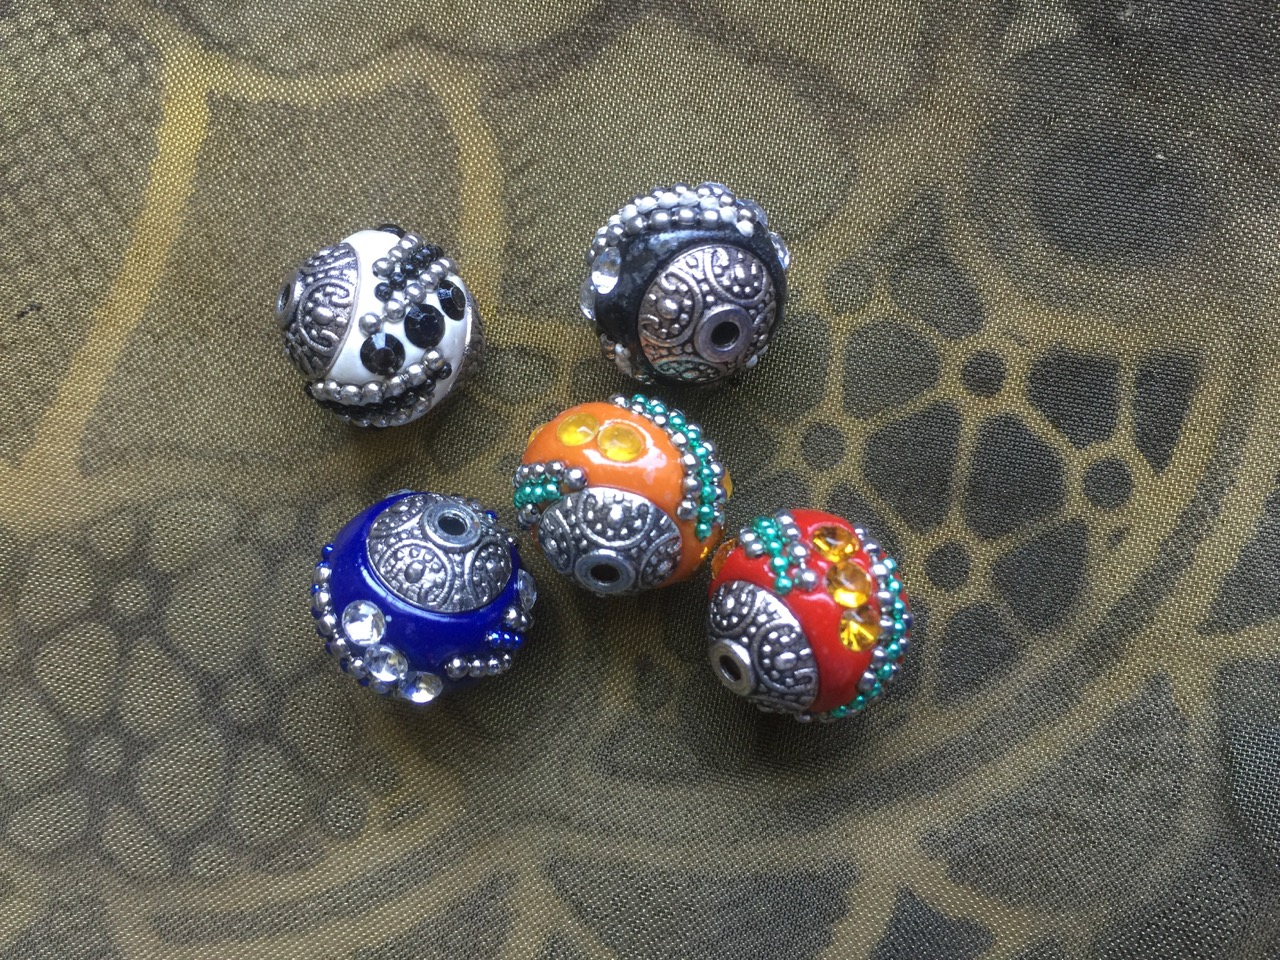 Handmade Indonesian 15mm Kashmiri Beads with Antique Silver Accents Buy More and Save!